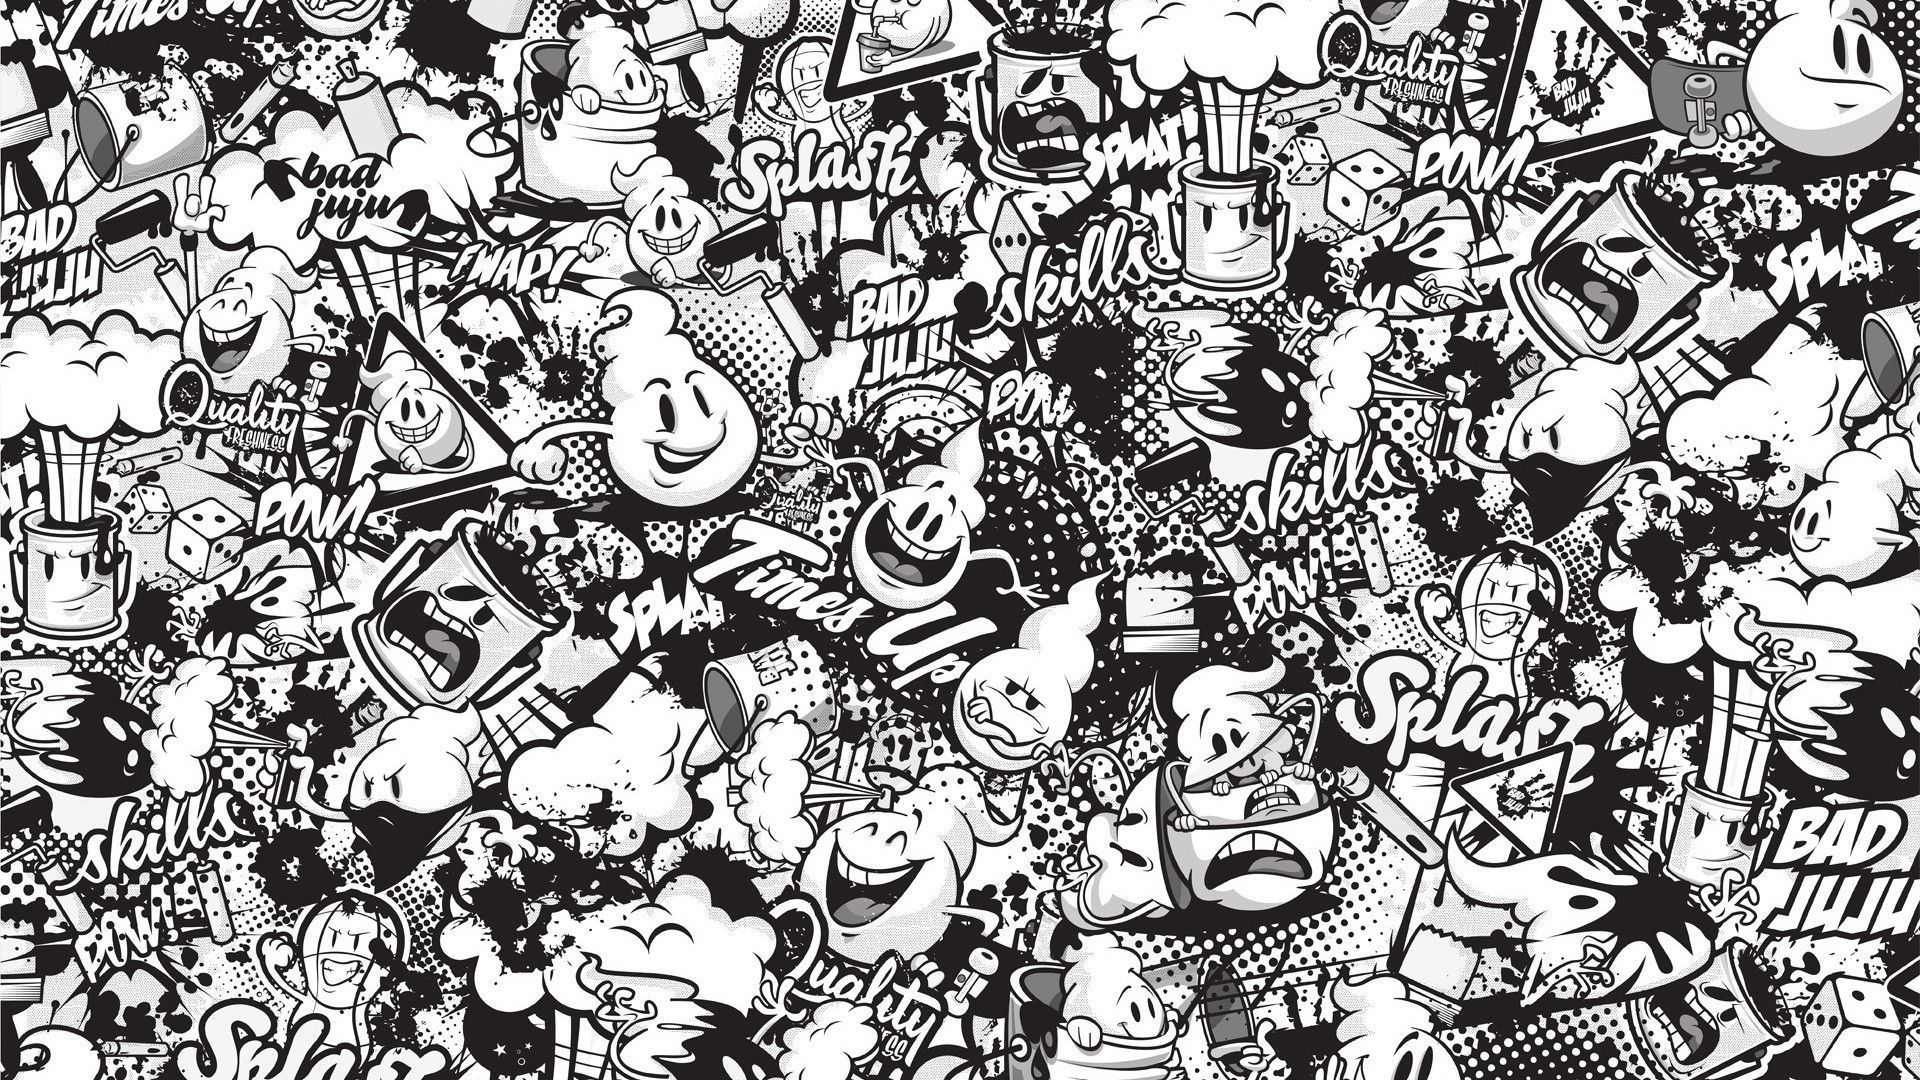 Black And White Graffiti Wallpapers Top Free Black And White